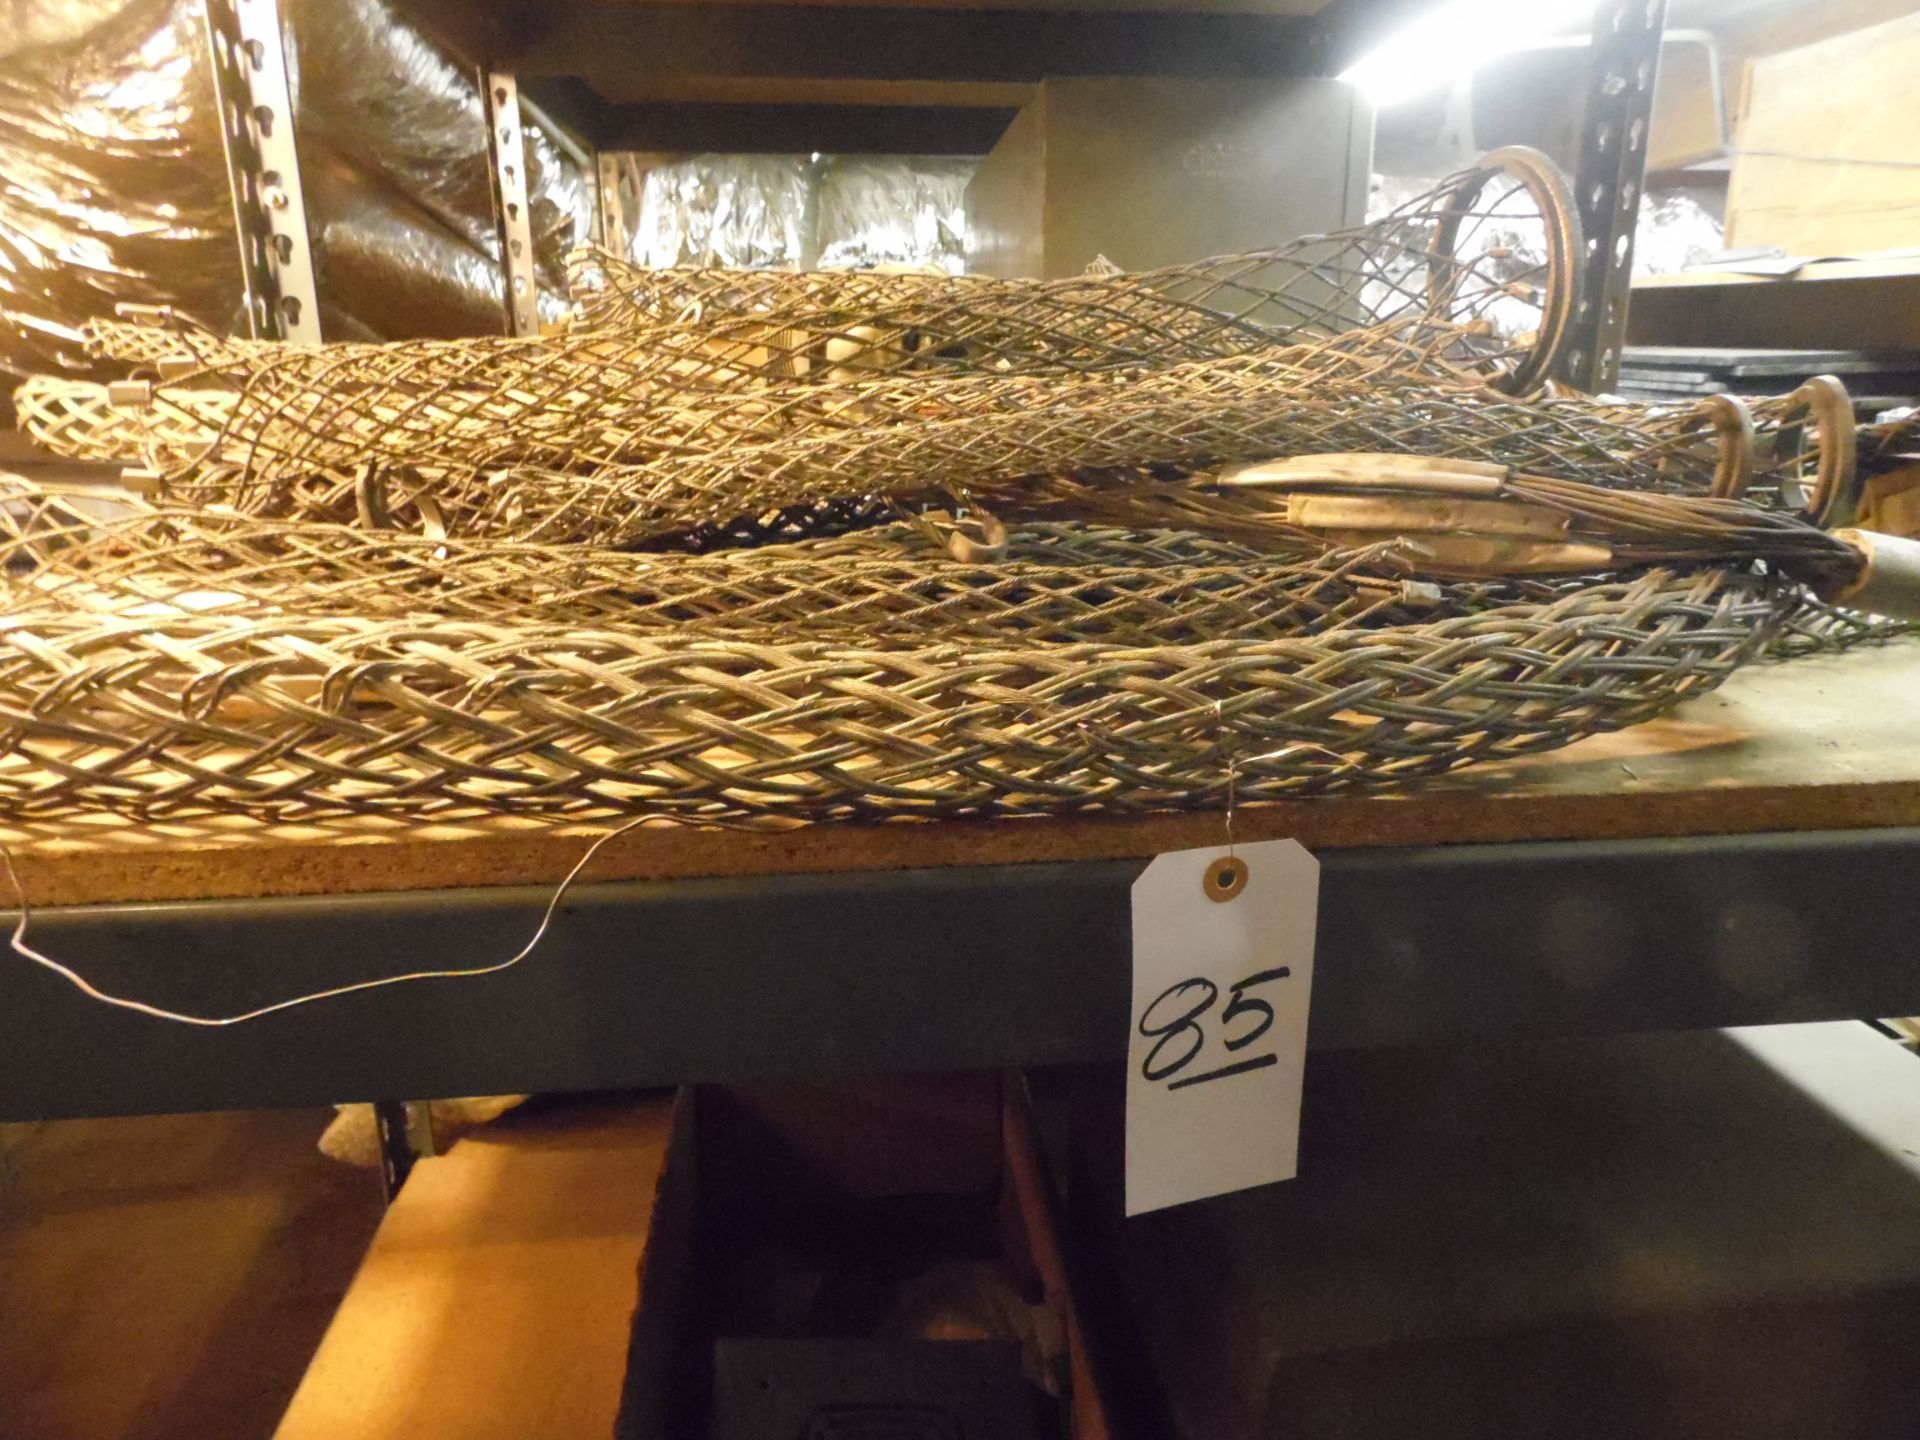 Lot 85 - RACK w/ BRAIDED CABLE, COILS, LIGHTS